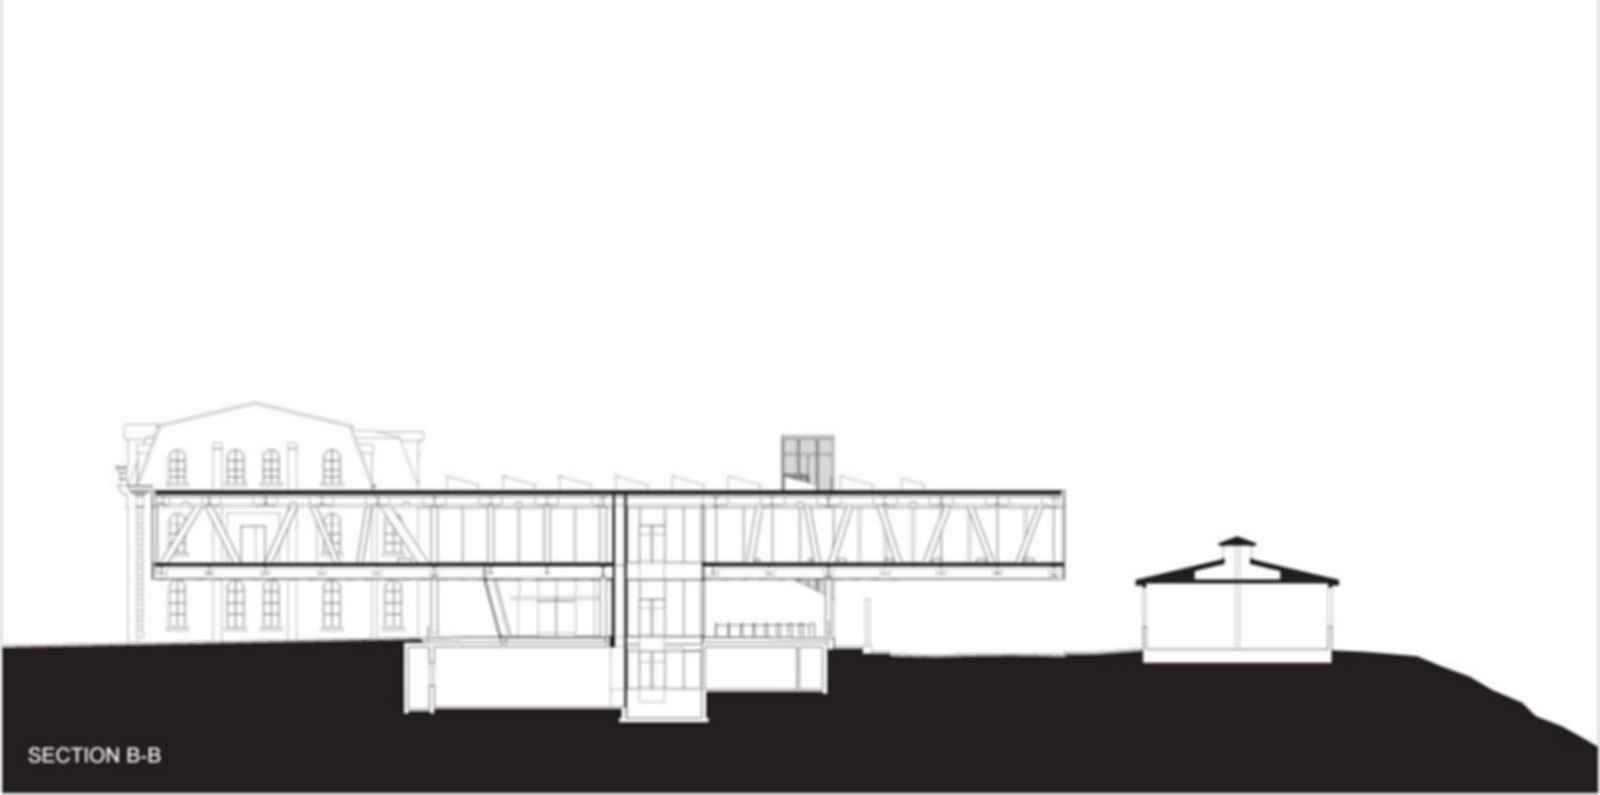 Milstein Hall At Cornell University Concept Design